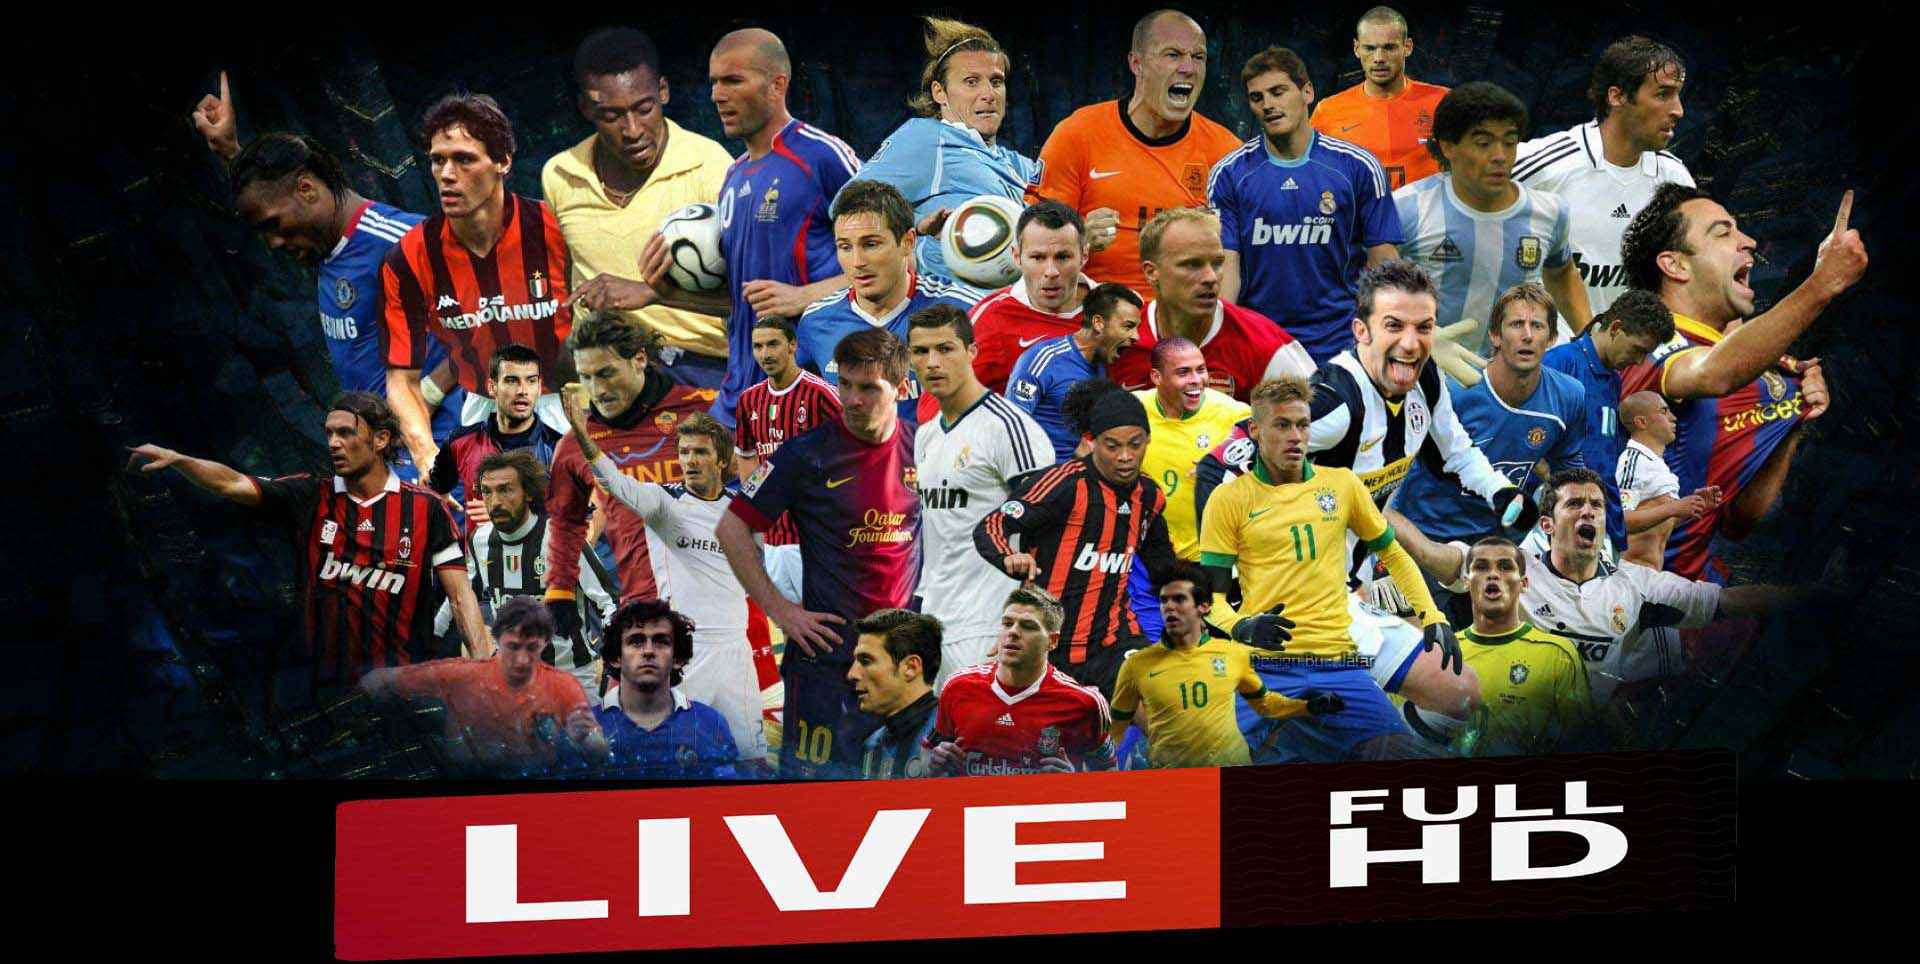 Real Madrid vs Legia live